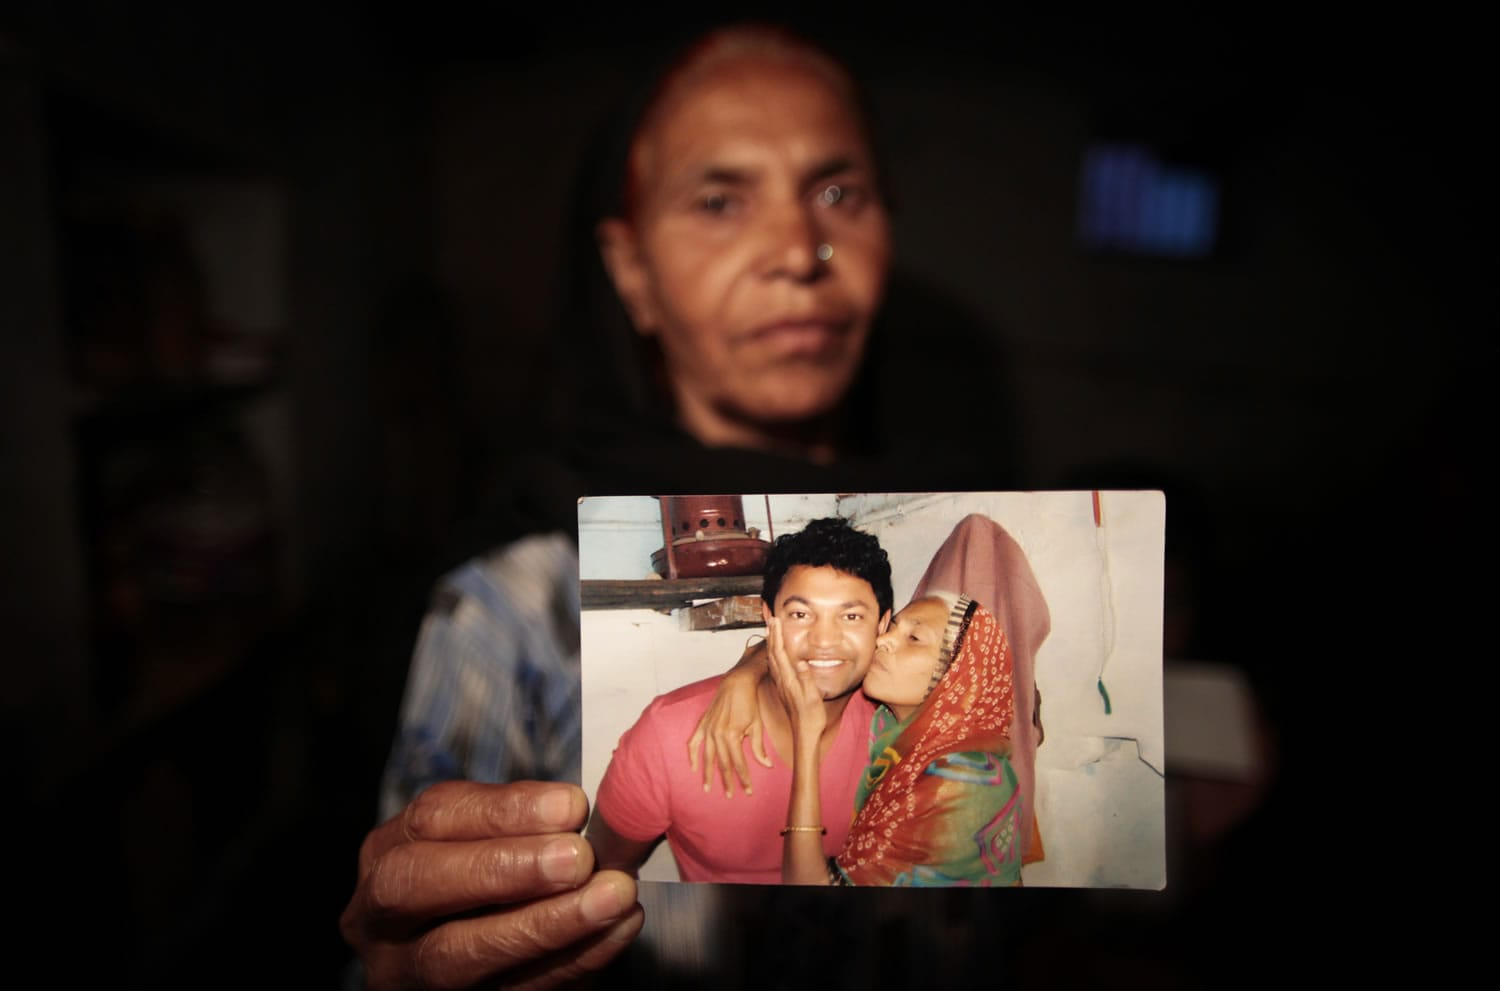 In this May 10, 2012 photo, Fatima Munshi, mother of Saroo, holds up a photo from their reunion in February 2012 at her home in Khandwa, India. Living in Australia, Saroo Brierley, 30, was reunited with his biological mother, Munshi, 25 years after an ill-fated train ride left him an orphan on the streets of Calcutta.